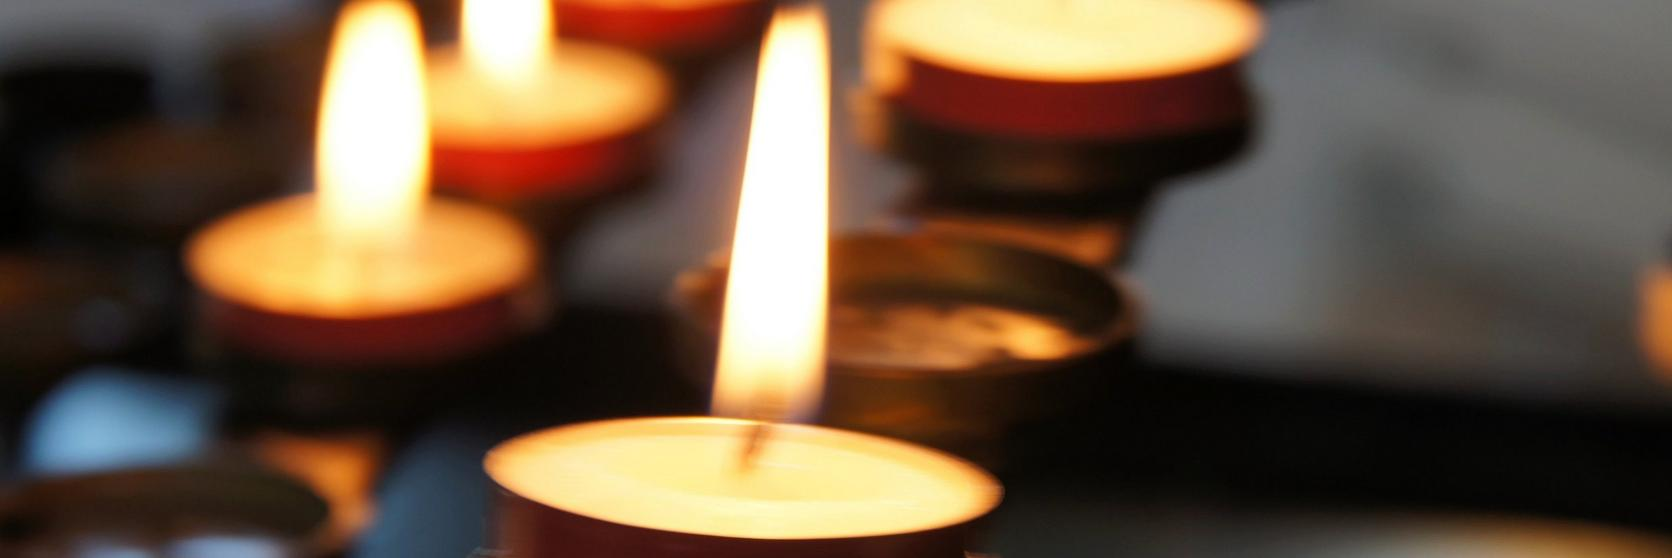 candles-cropped